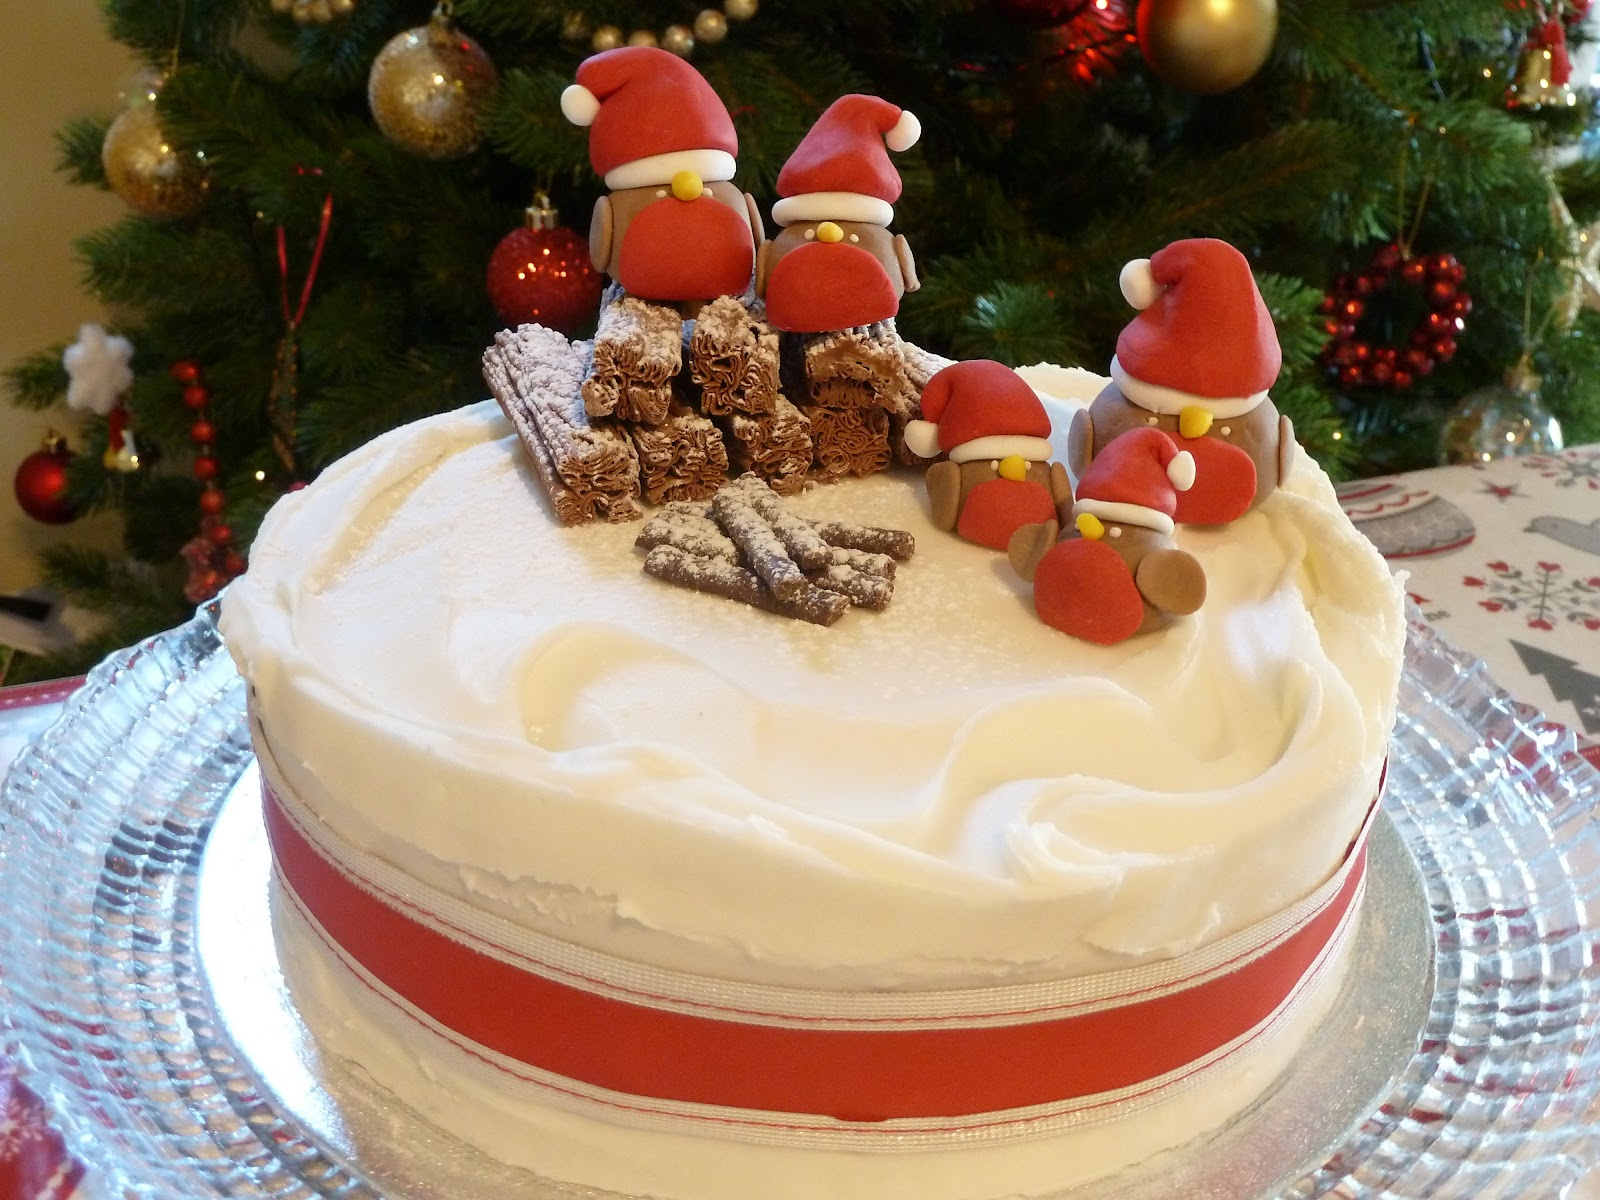 Christmas Cake with Festive Robin decorations